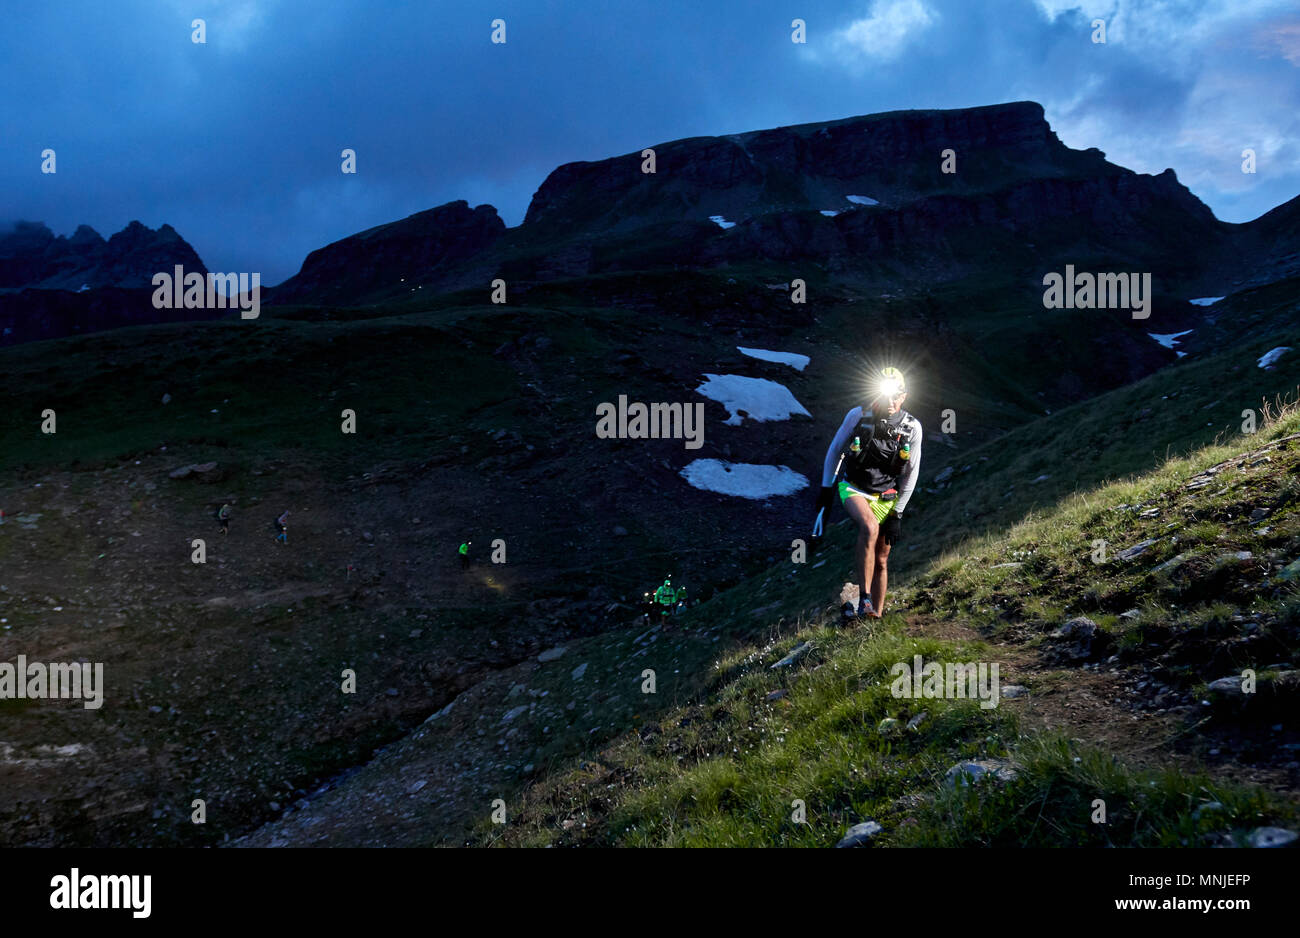 Hikers with headlamps hiking at evening, Alpe Devero, Verbania, Italy - Stock Image